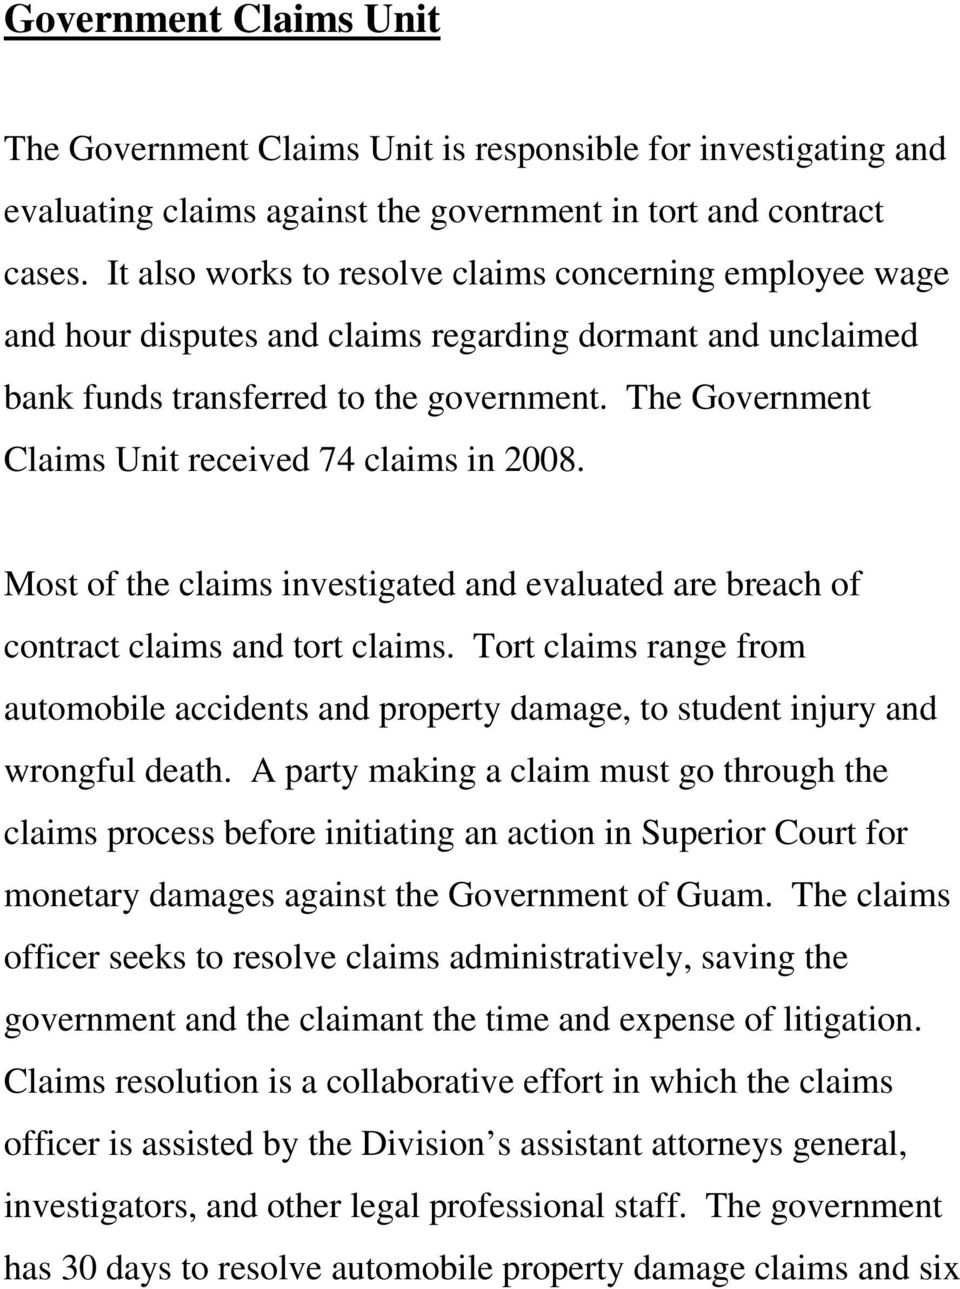 The Government Claims Unit received 74 claims in 2008. Most of the claims investigated and evaluated are breach of contract claims and tort claims.